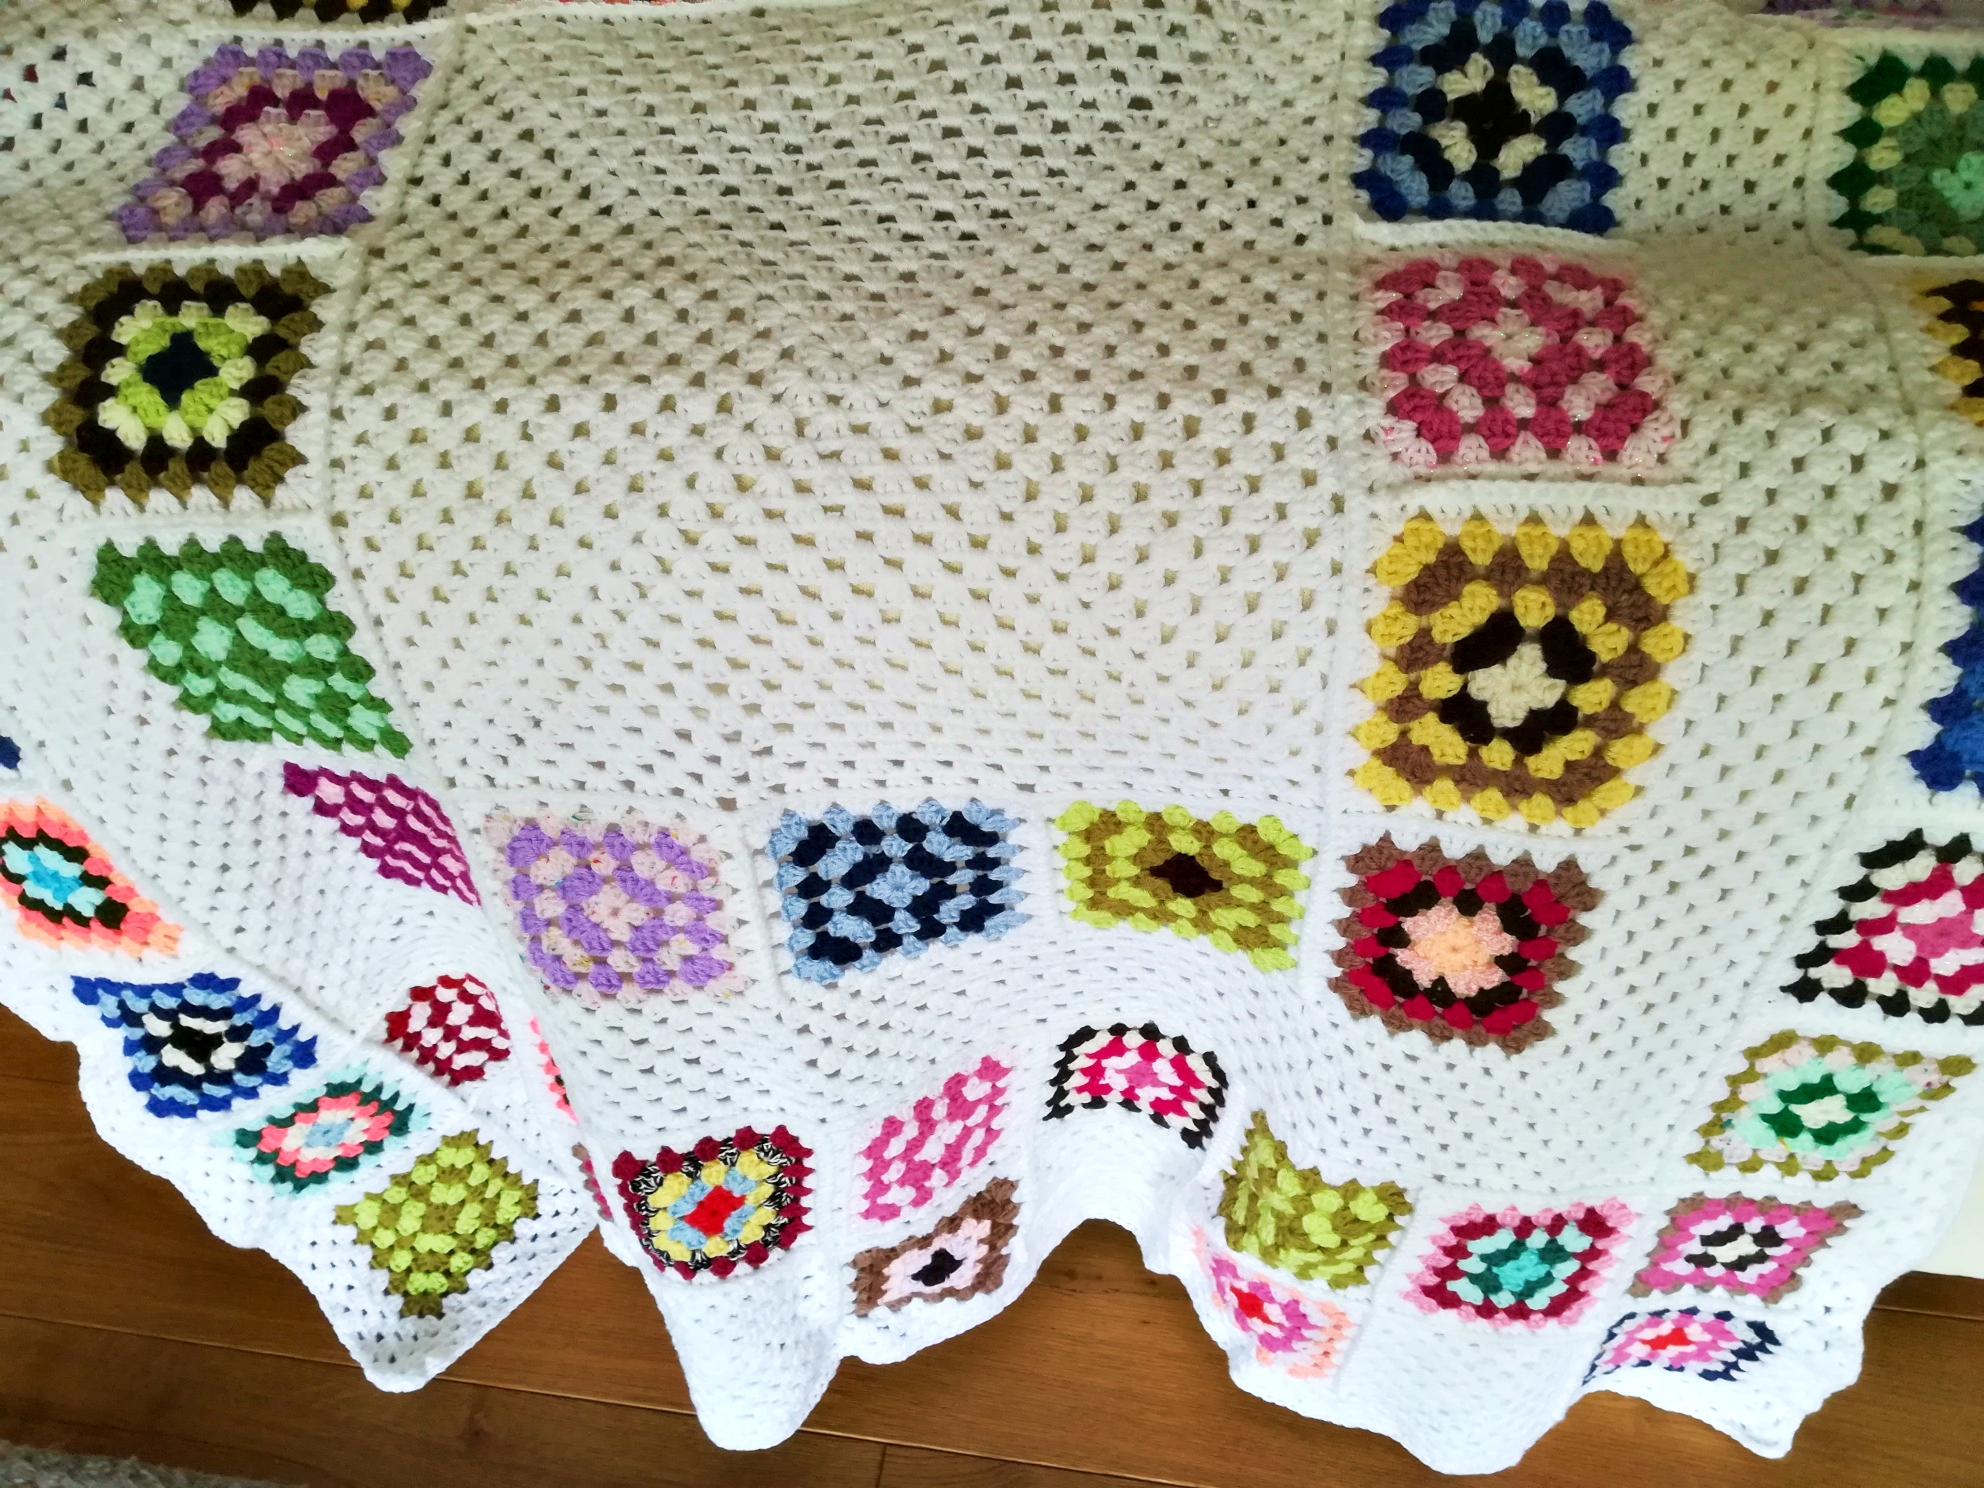 Gorgeous crocheted throw - to brighten any room